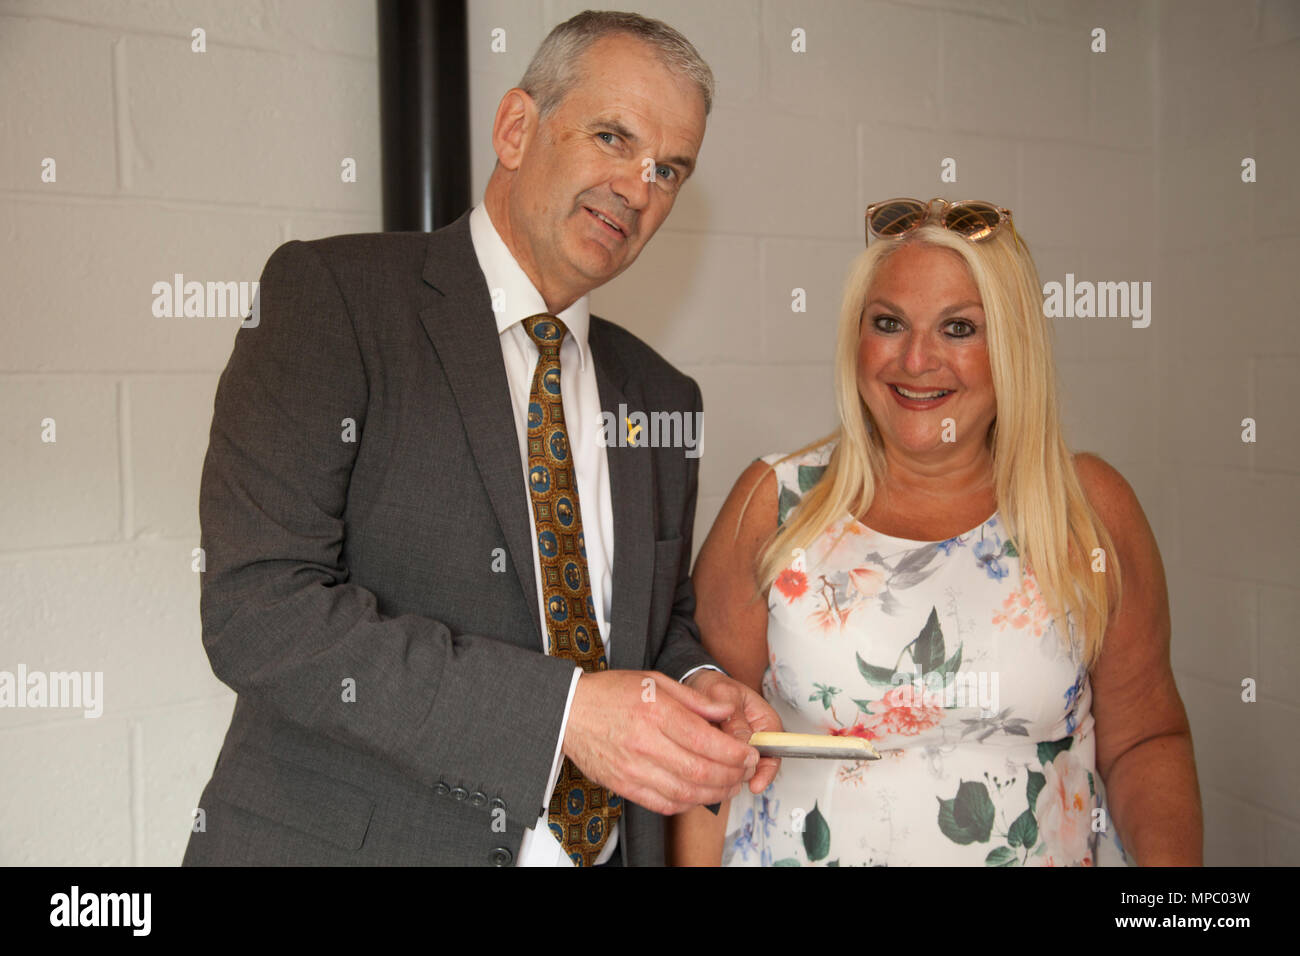 Chelsea, London, UK. 21st May, 2018. David Hartley Managing Director of Wensleydale Creamery and Vanessa  Feltz  cheese tasting in the bothy on the Welcome to Yorkshire garden at Chelsea Flower Show 2018, designed by Mark Gregory for Landformconsultants.co.uk Credit: Jenny Lilly/Alamy Live News - Stock Image